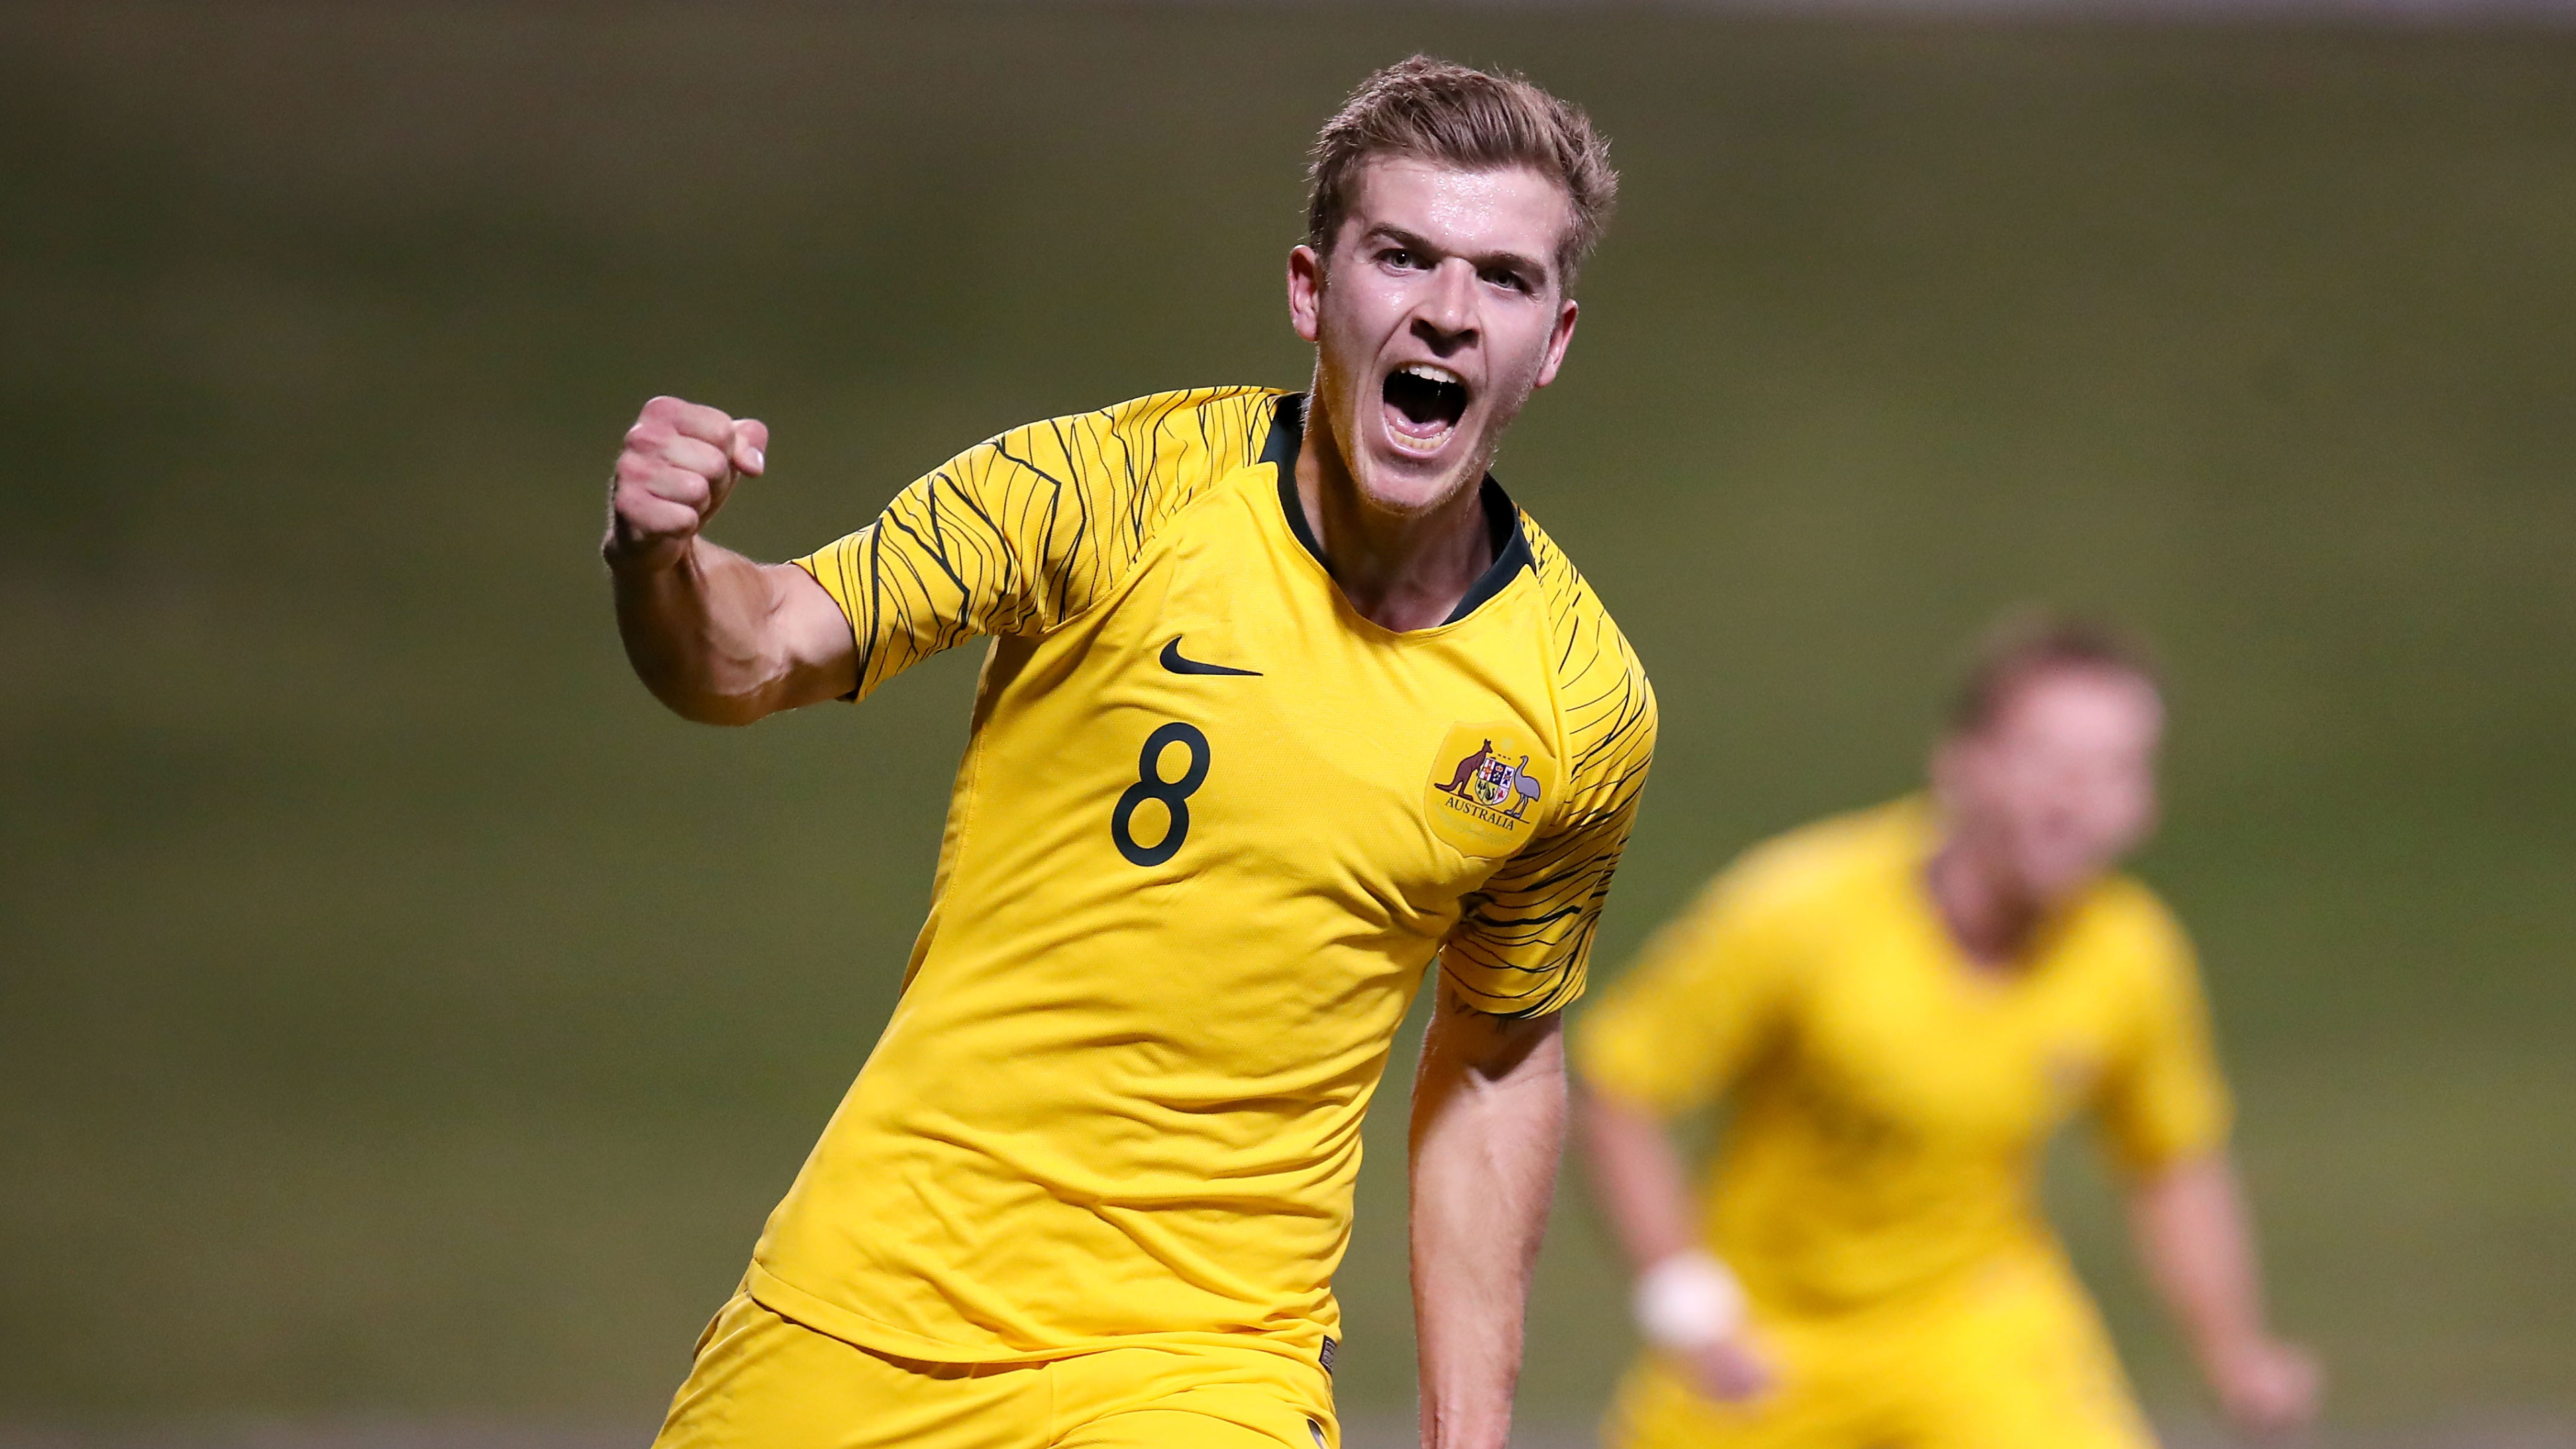 Bosnich: Australia's football development is broken but there is talent ready for Europe